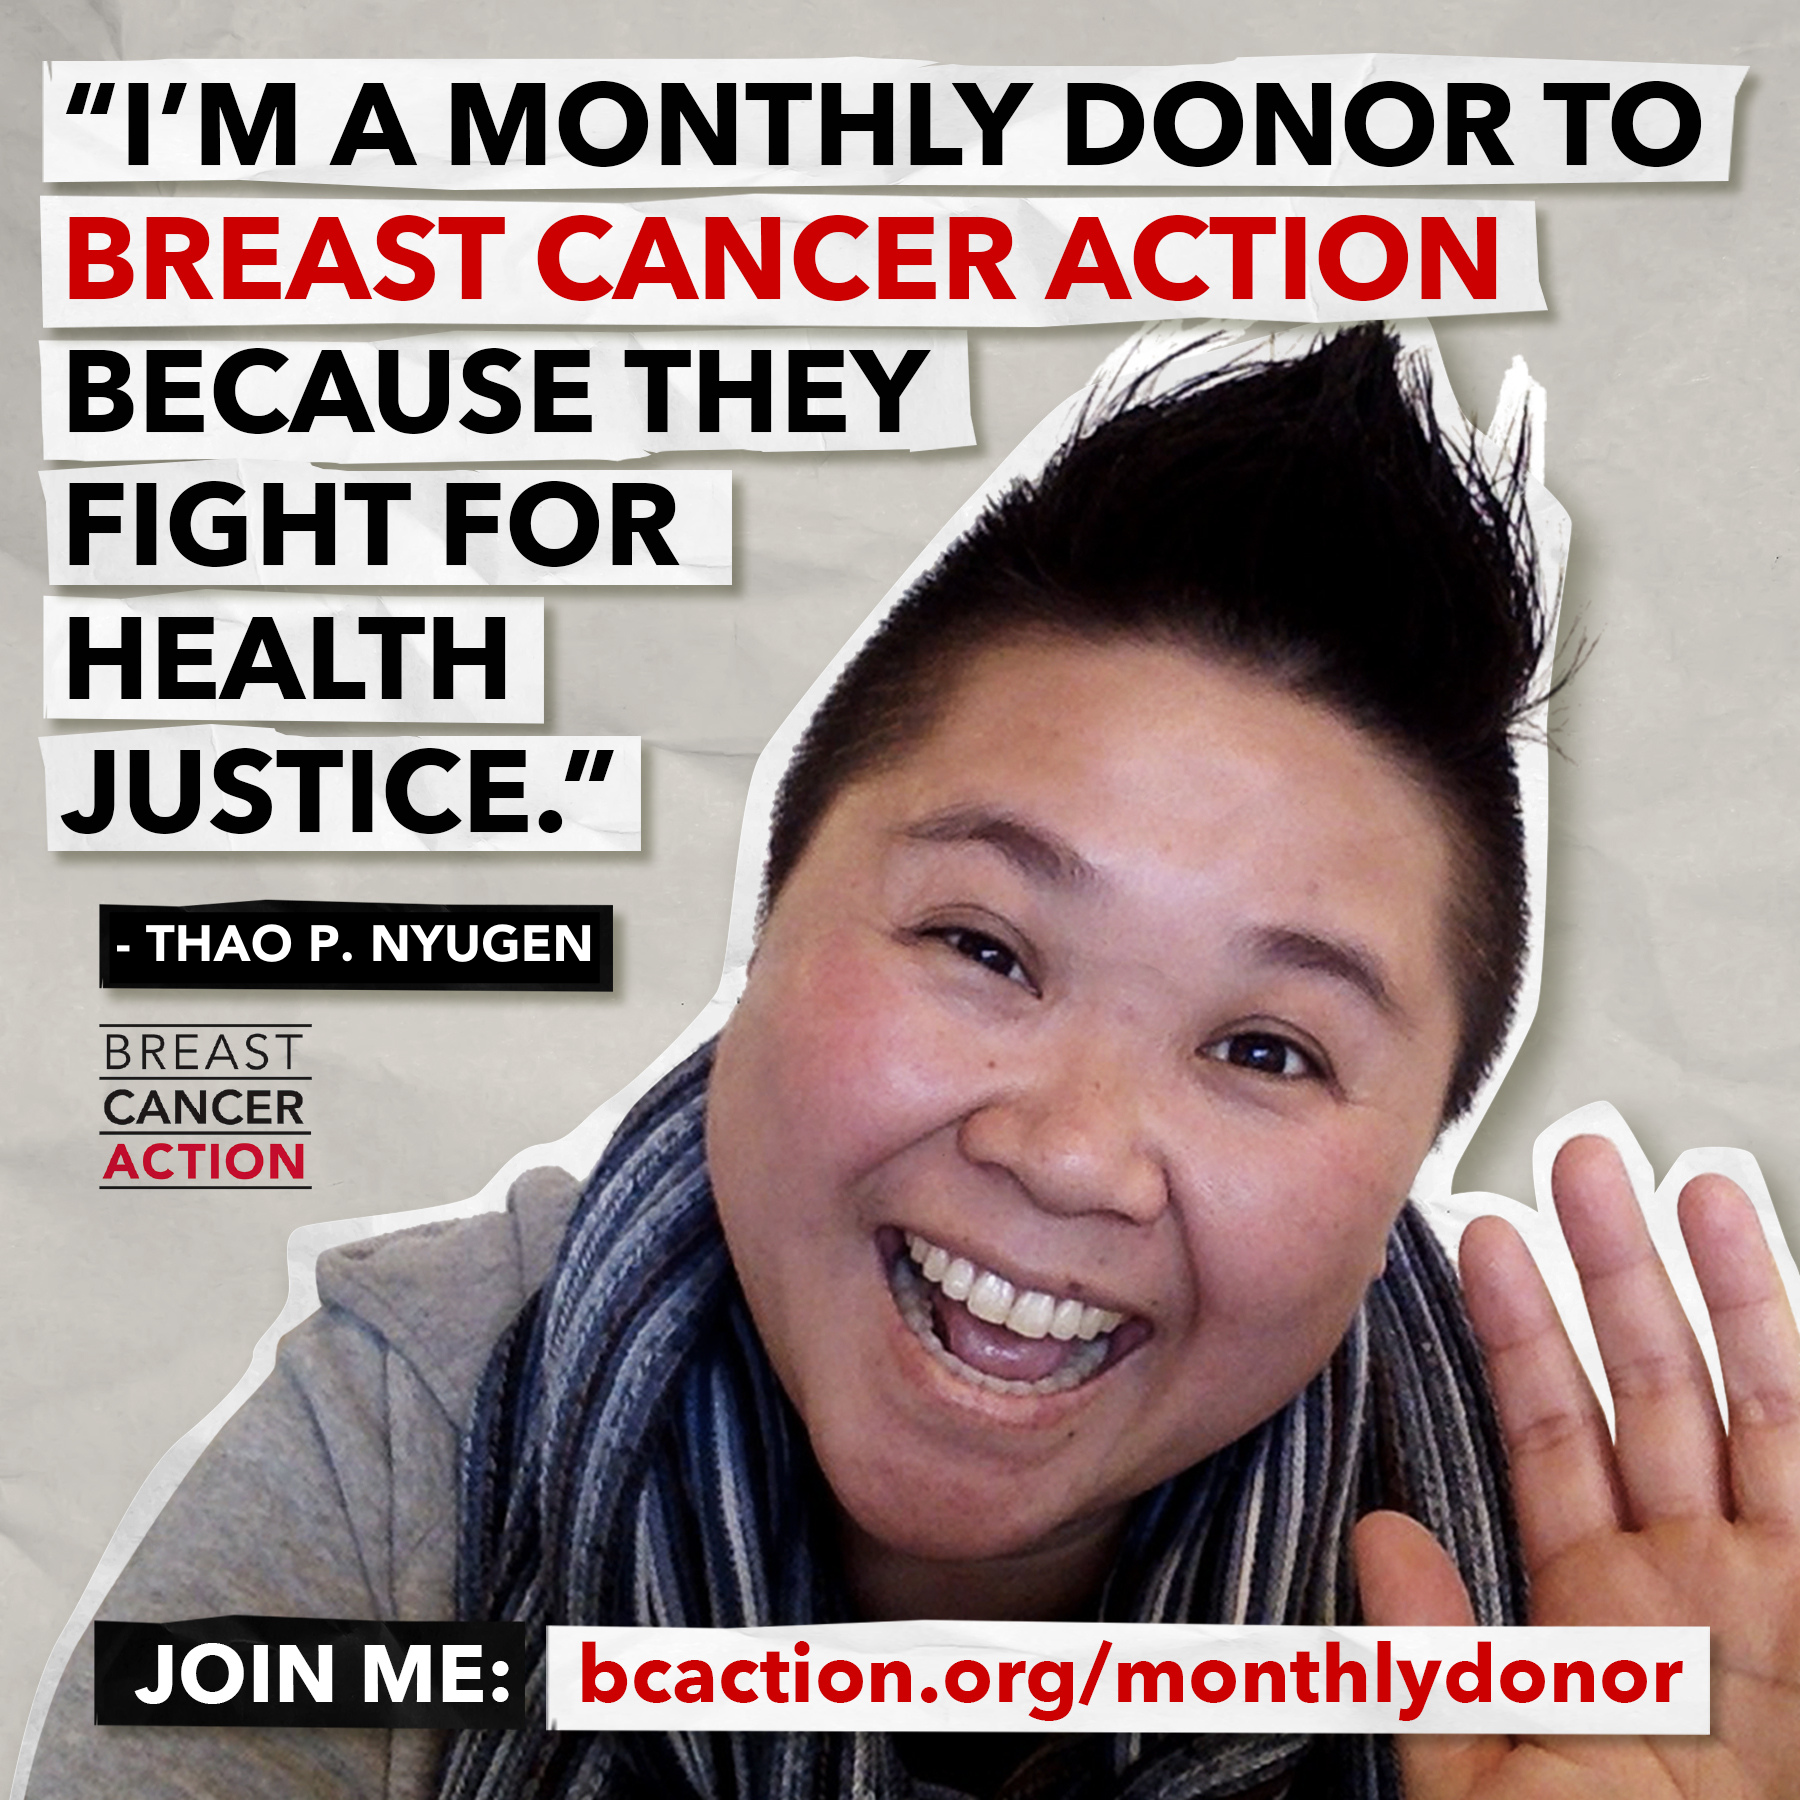 Thao P Nyguen photo and quote about monthly giving.